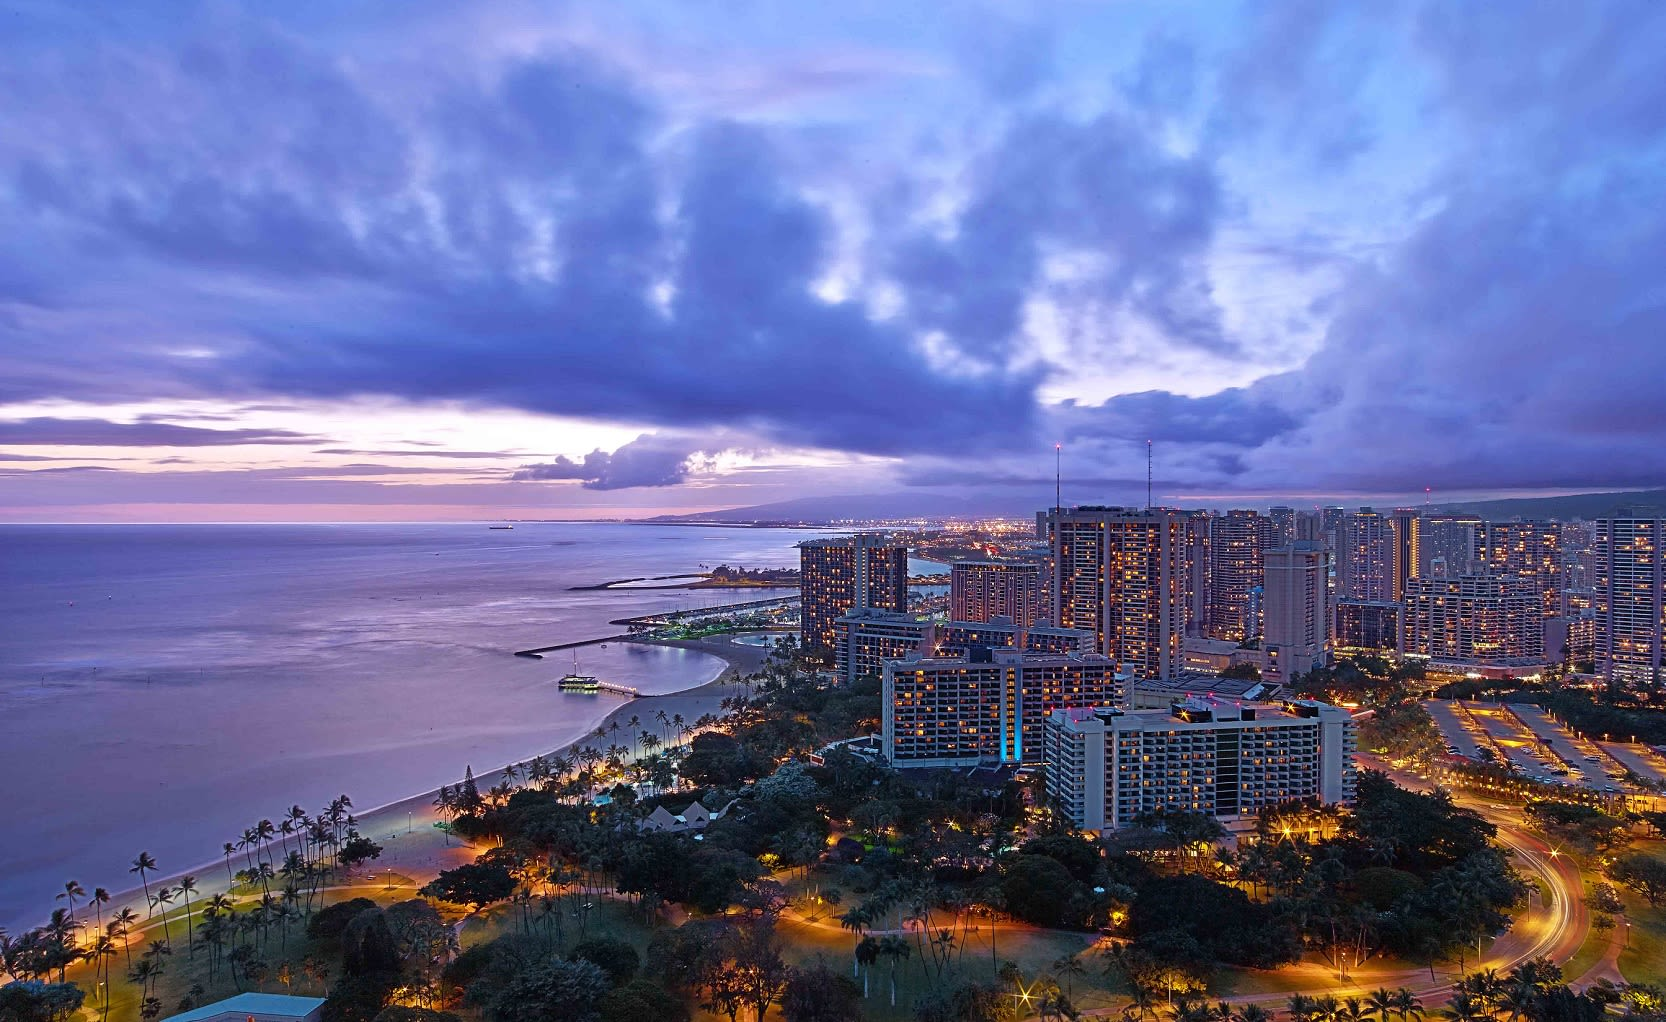 Trump Waikiki ocean view from hotel